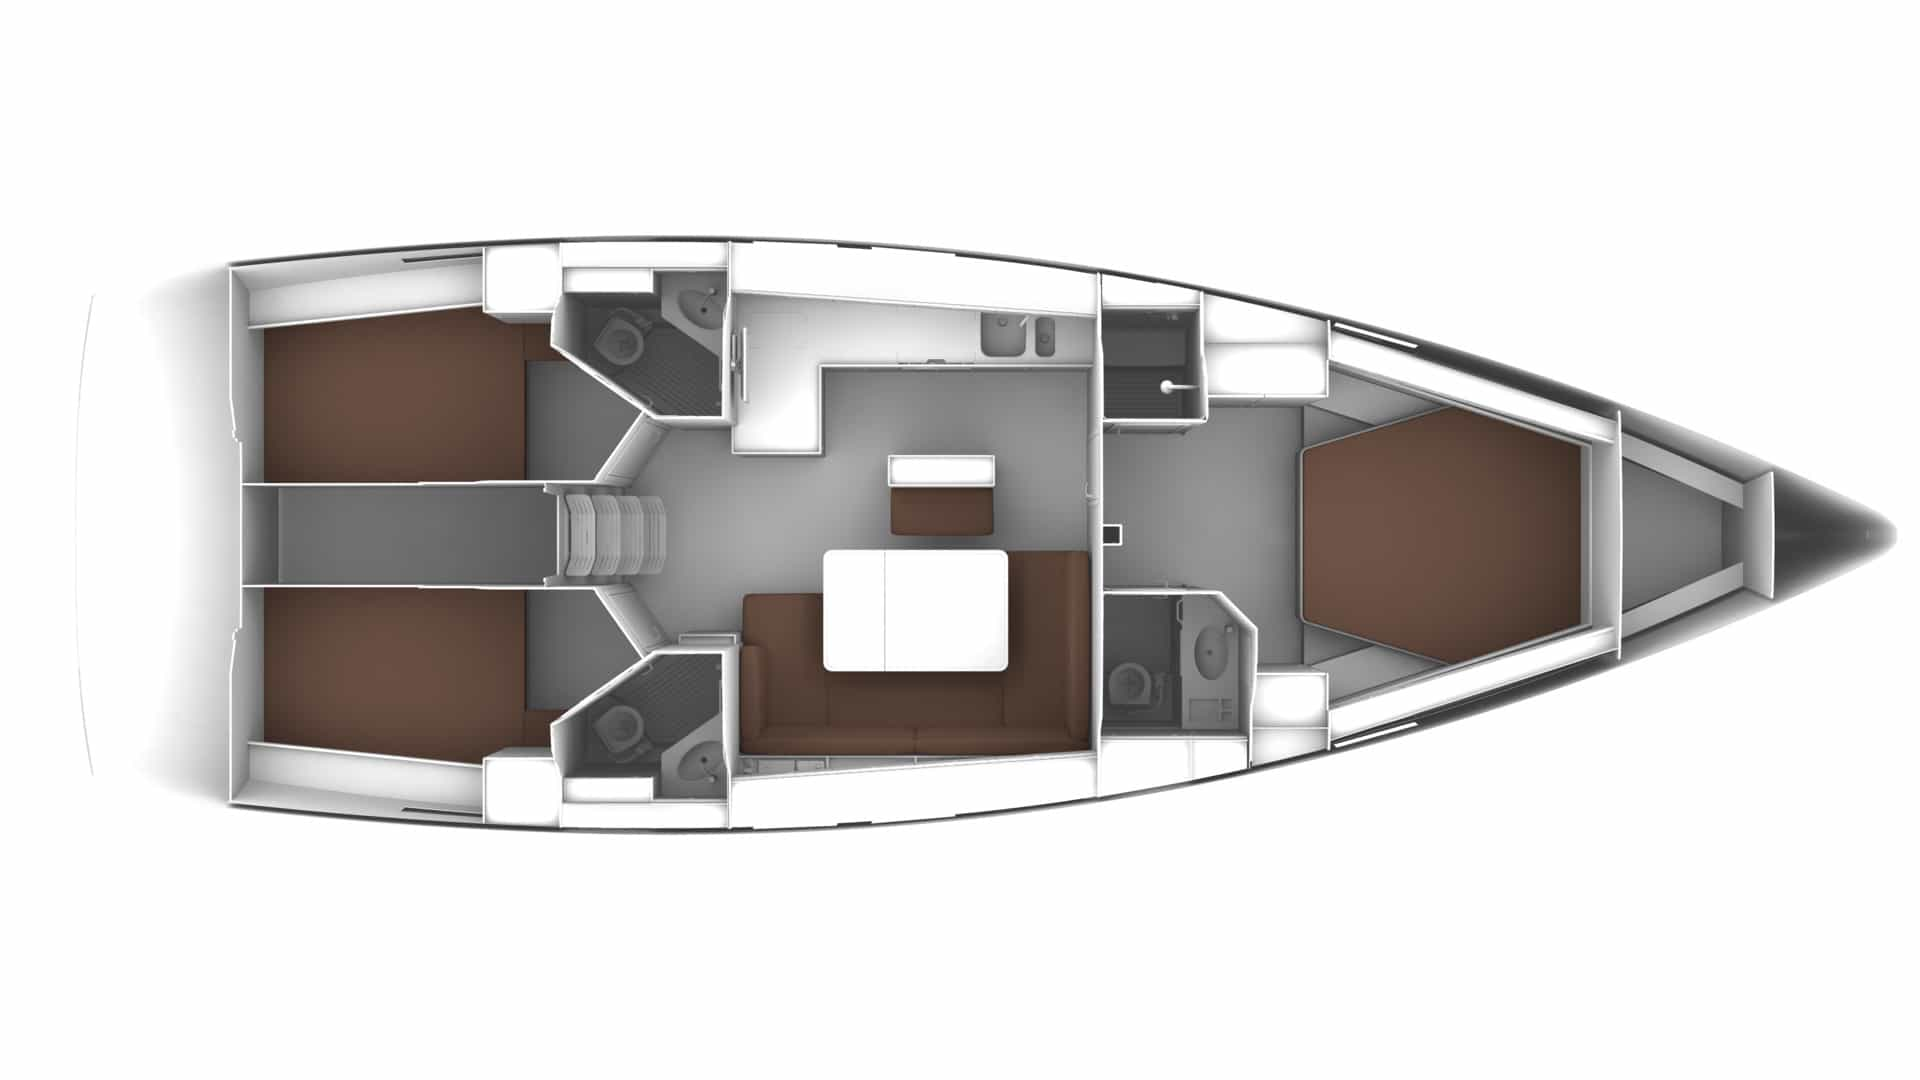 Bavaria Cruiser 46 layout